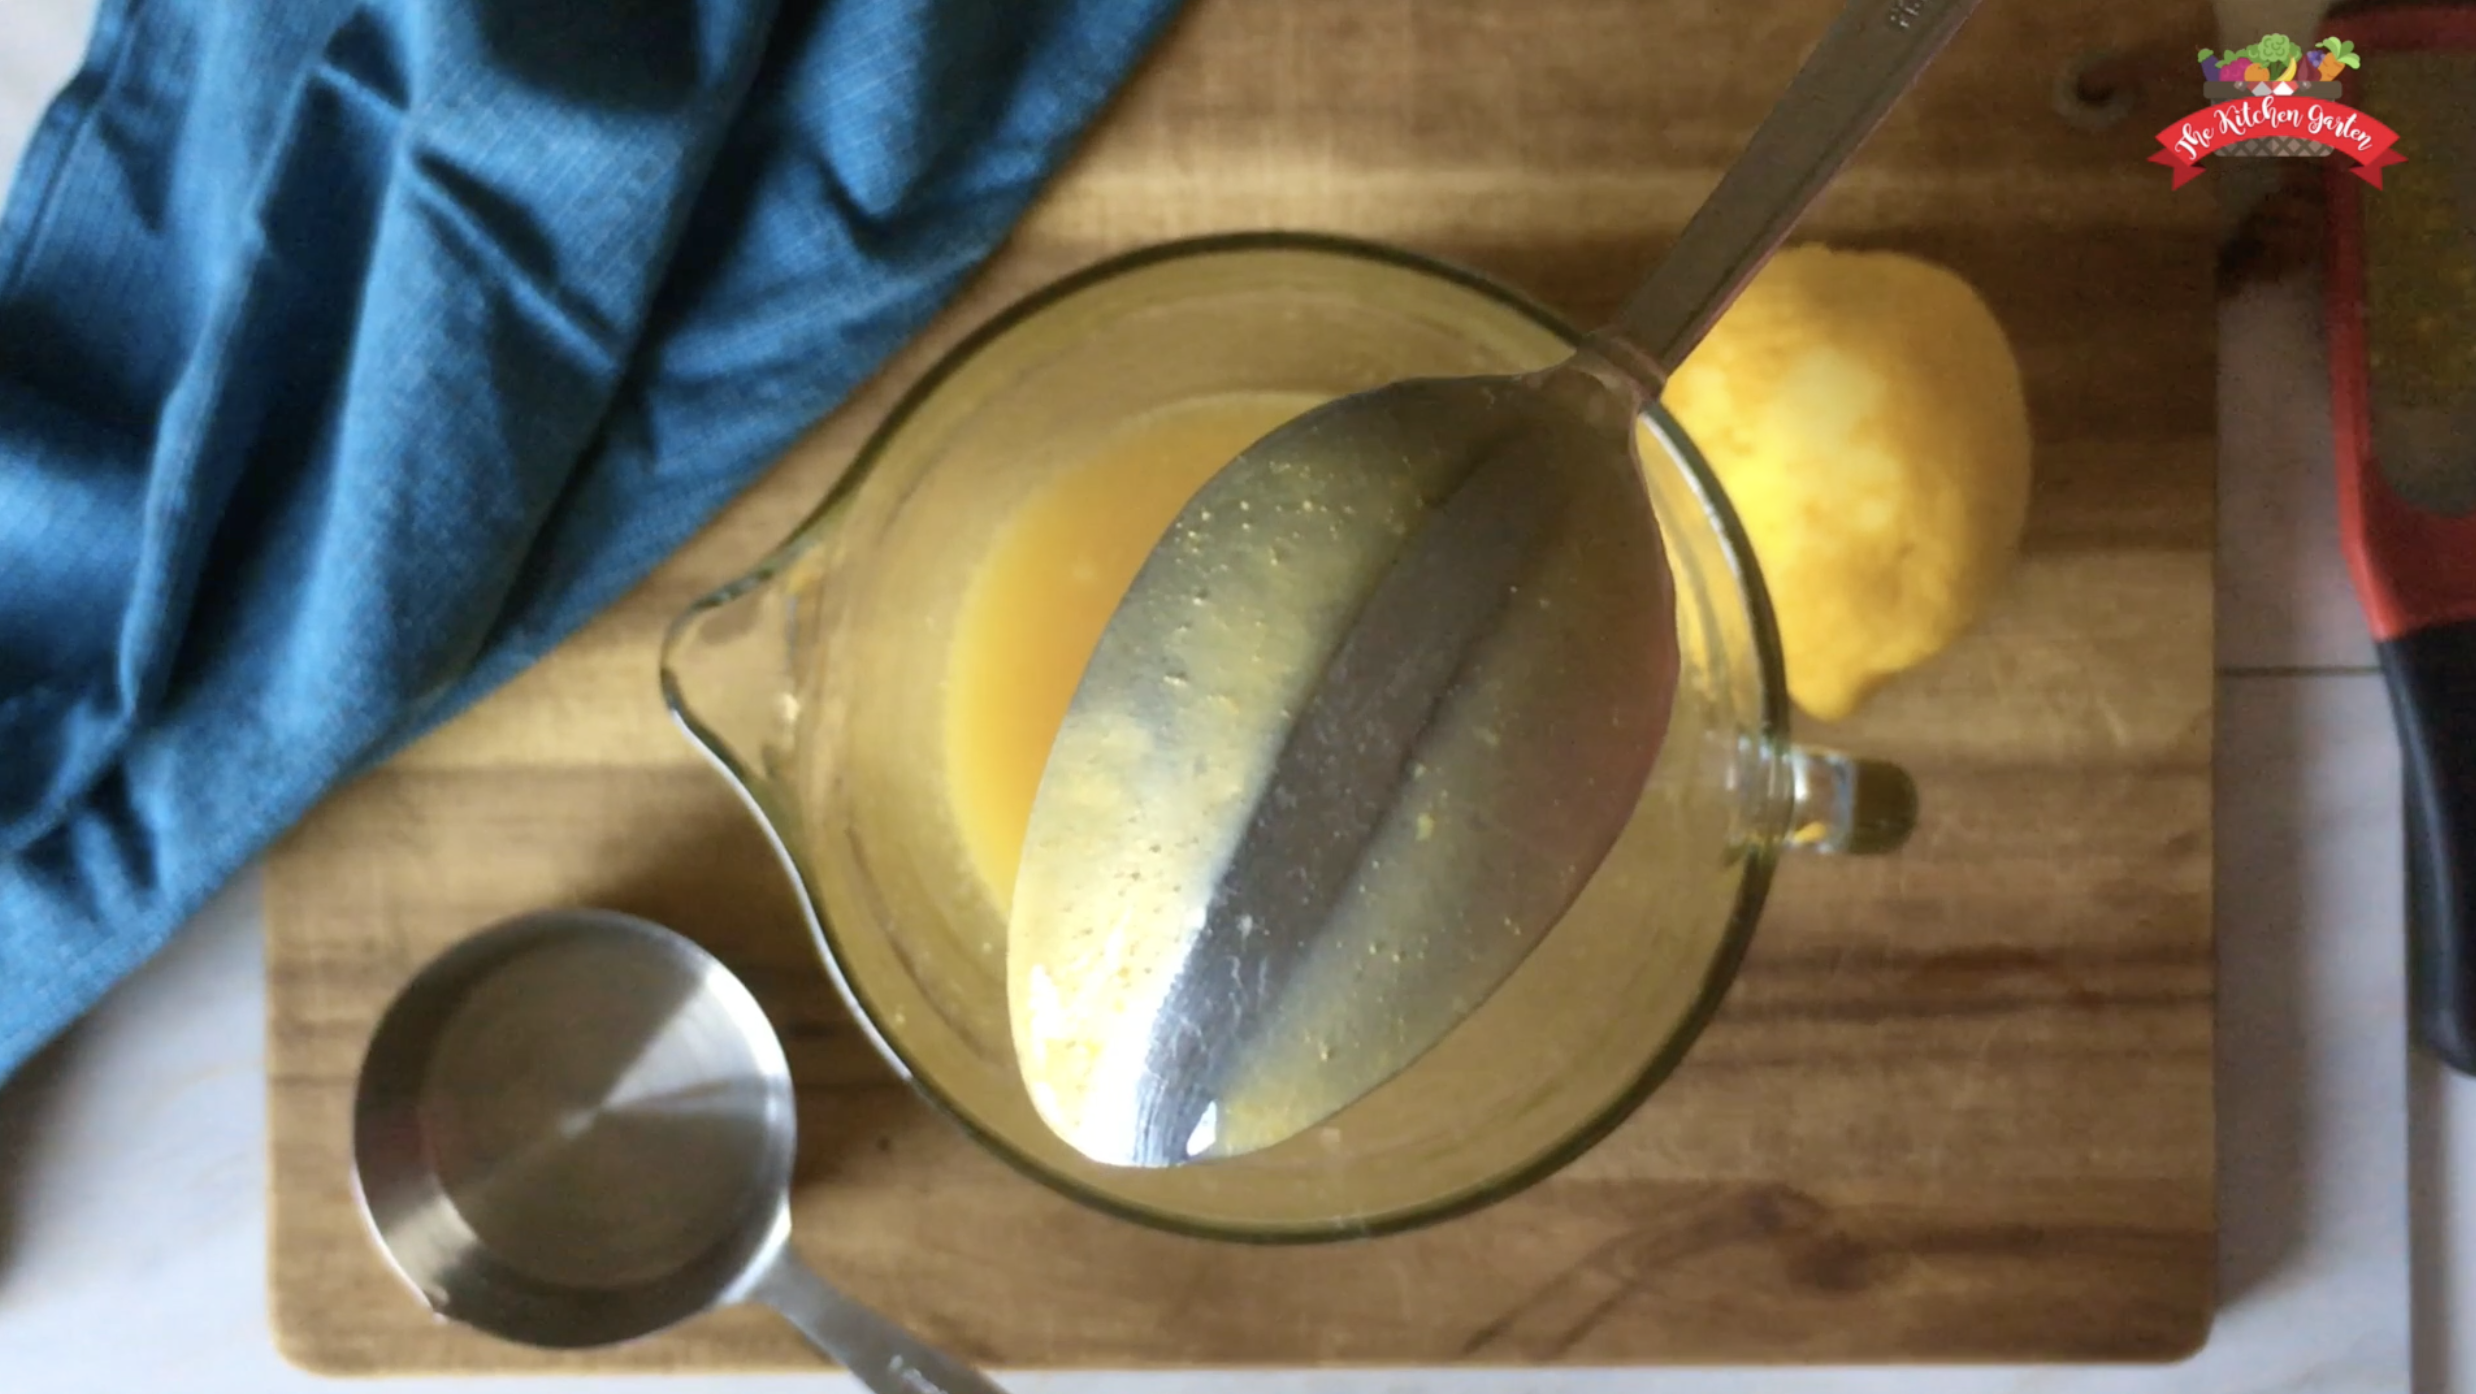 microwave lemon curd coating the back of a spoon